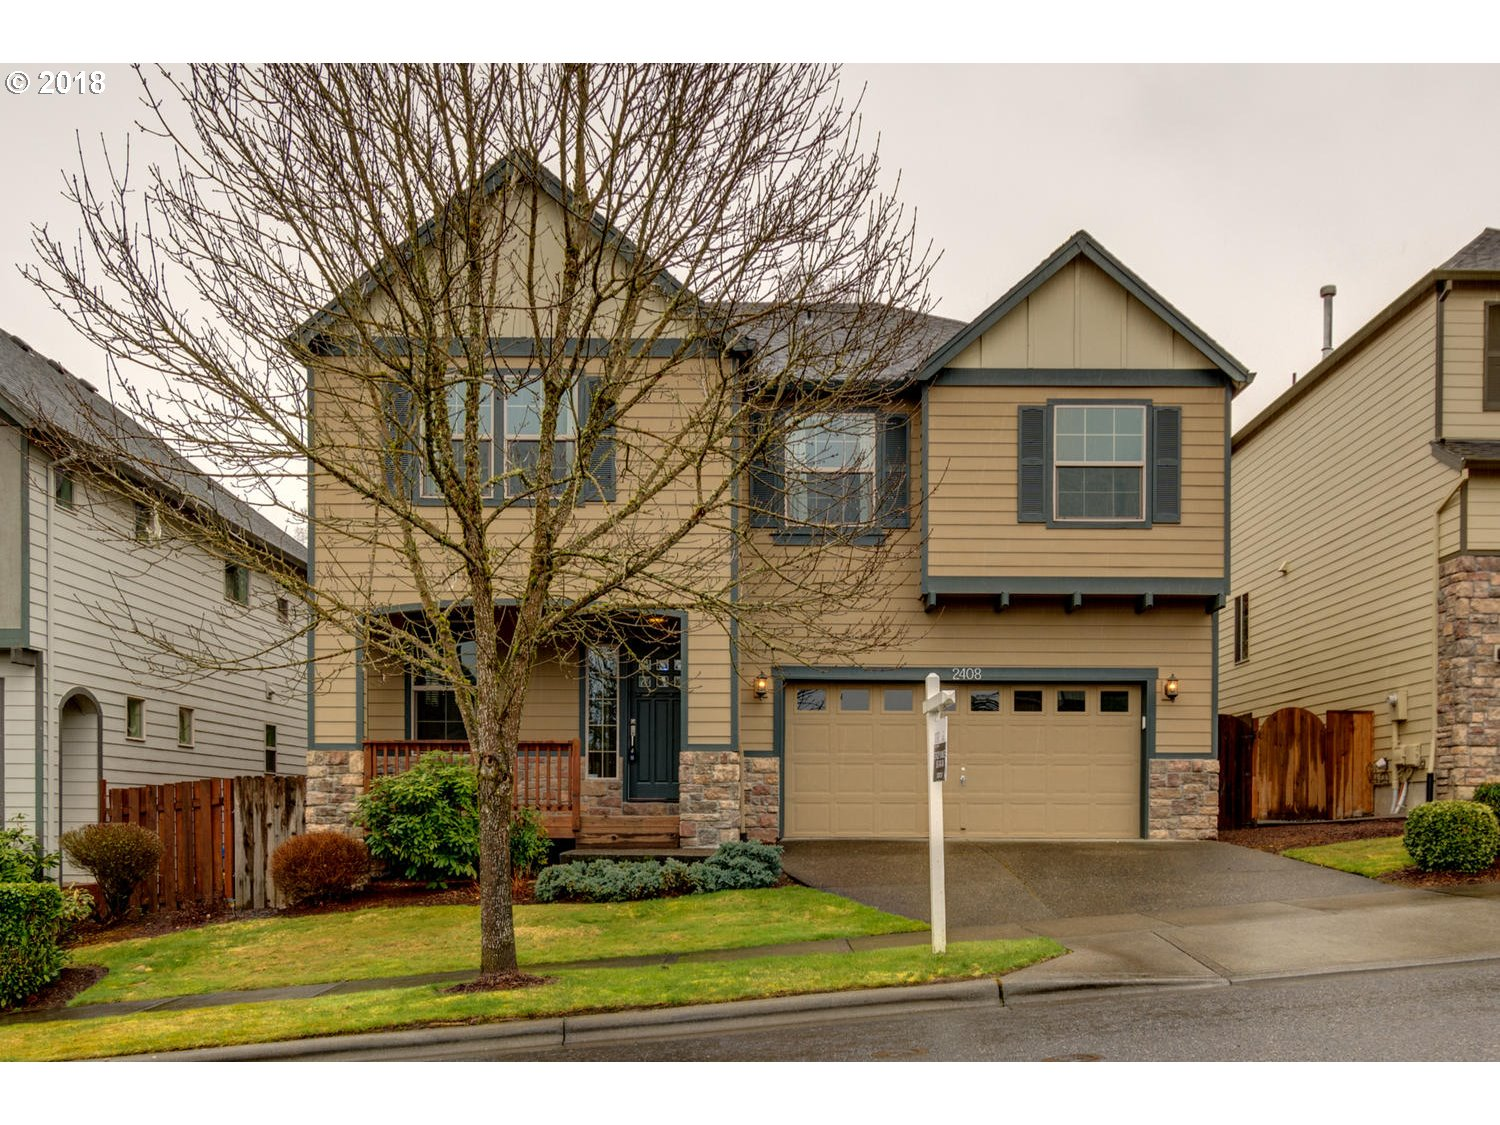 2408 NW 113TH AVE, Portland OR 97229